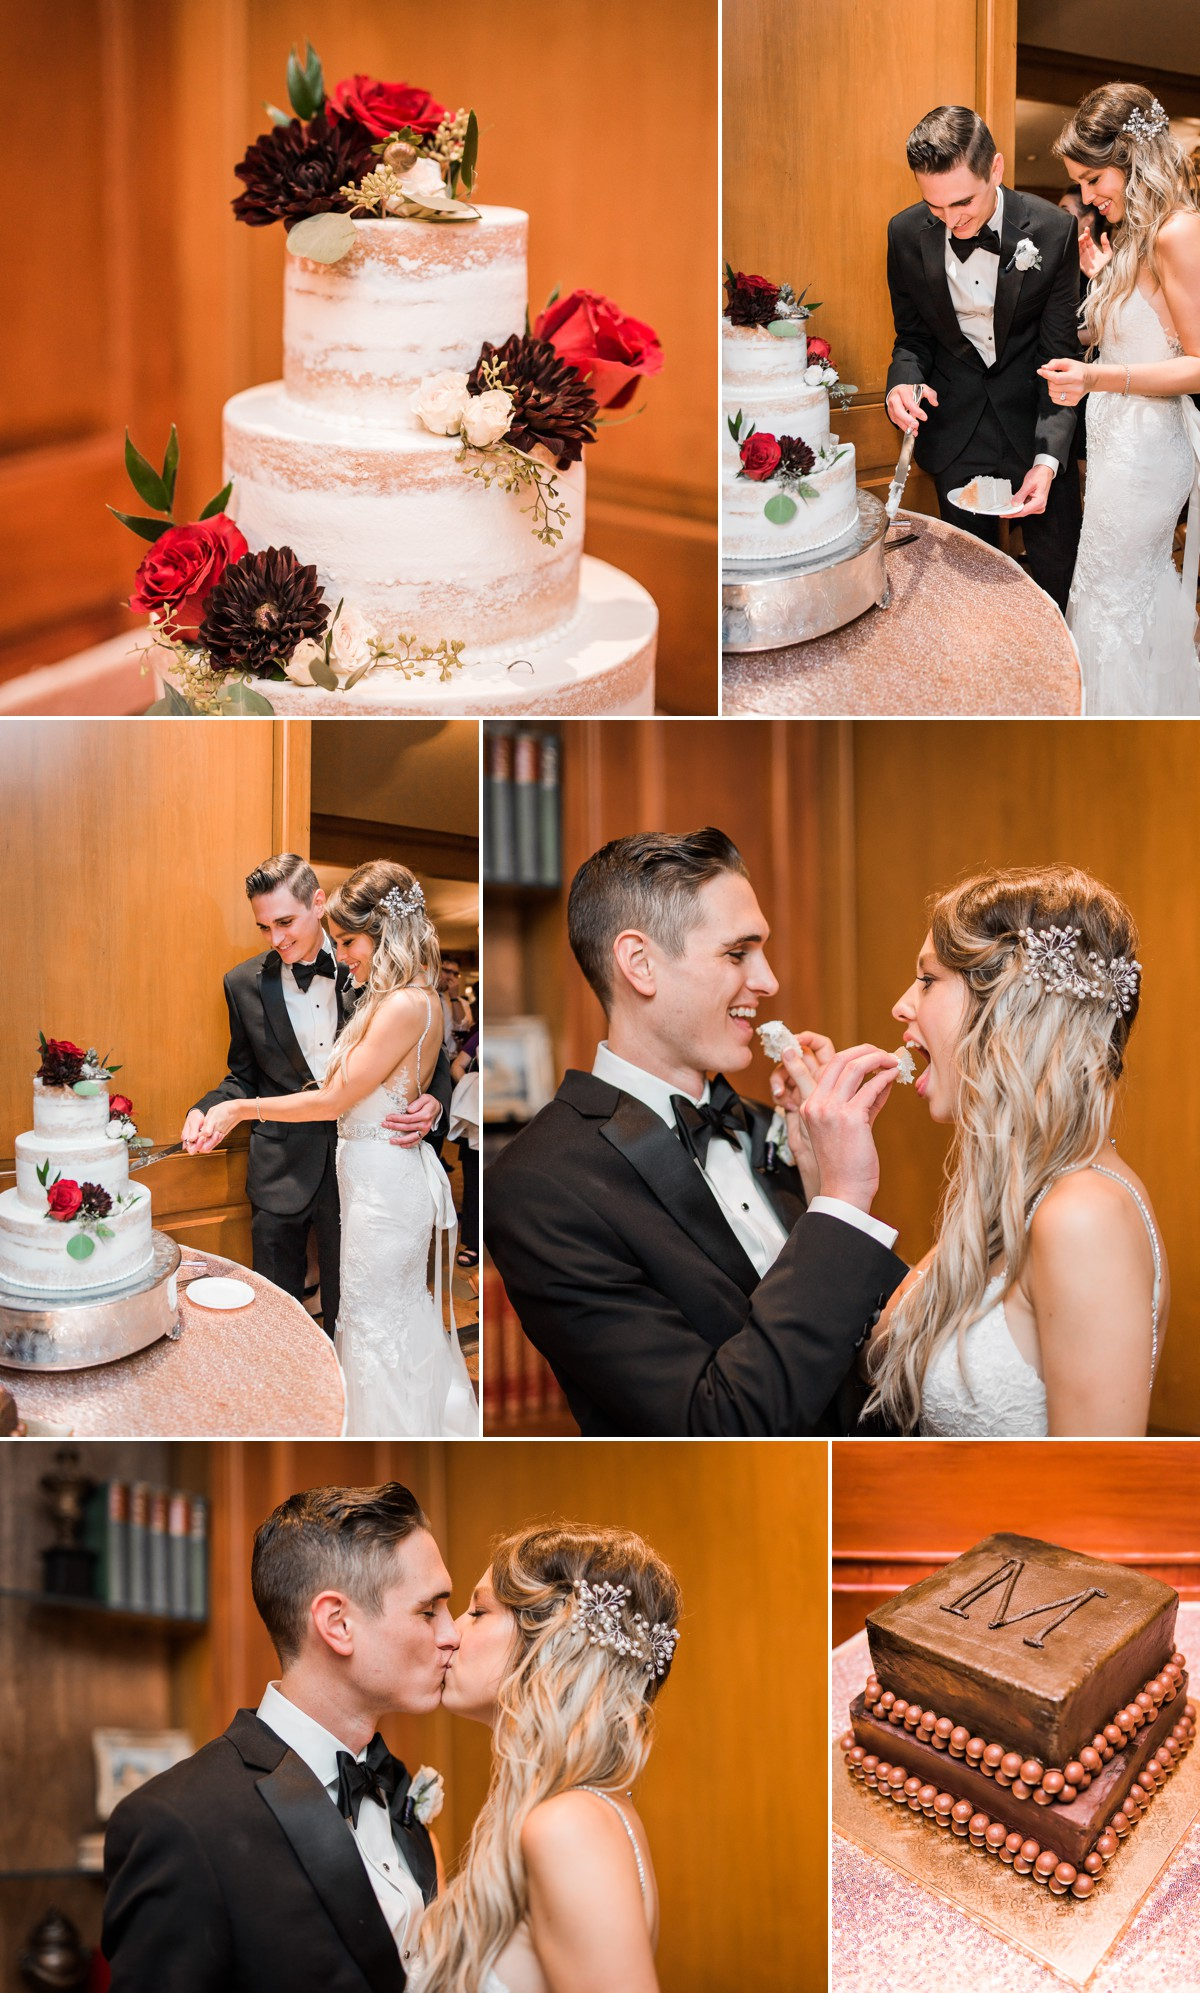 Manor House Wedding at The Houstonian Hotel Cake Cutting Bride and Groom